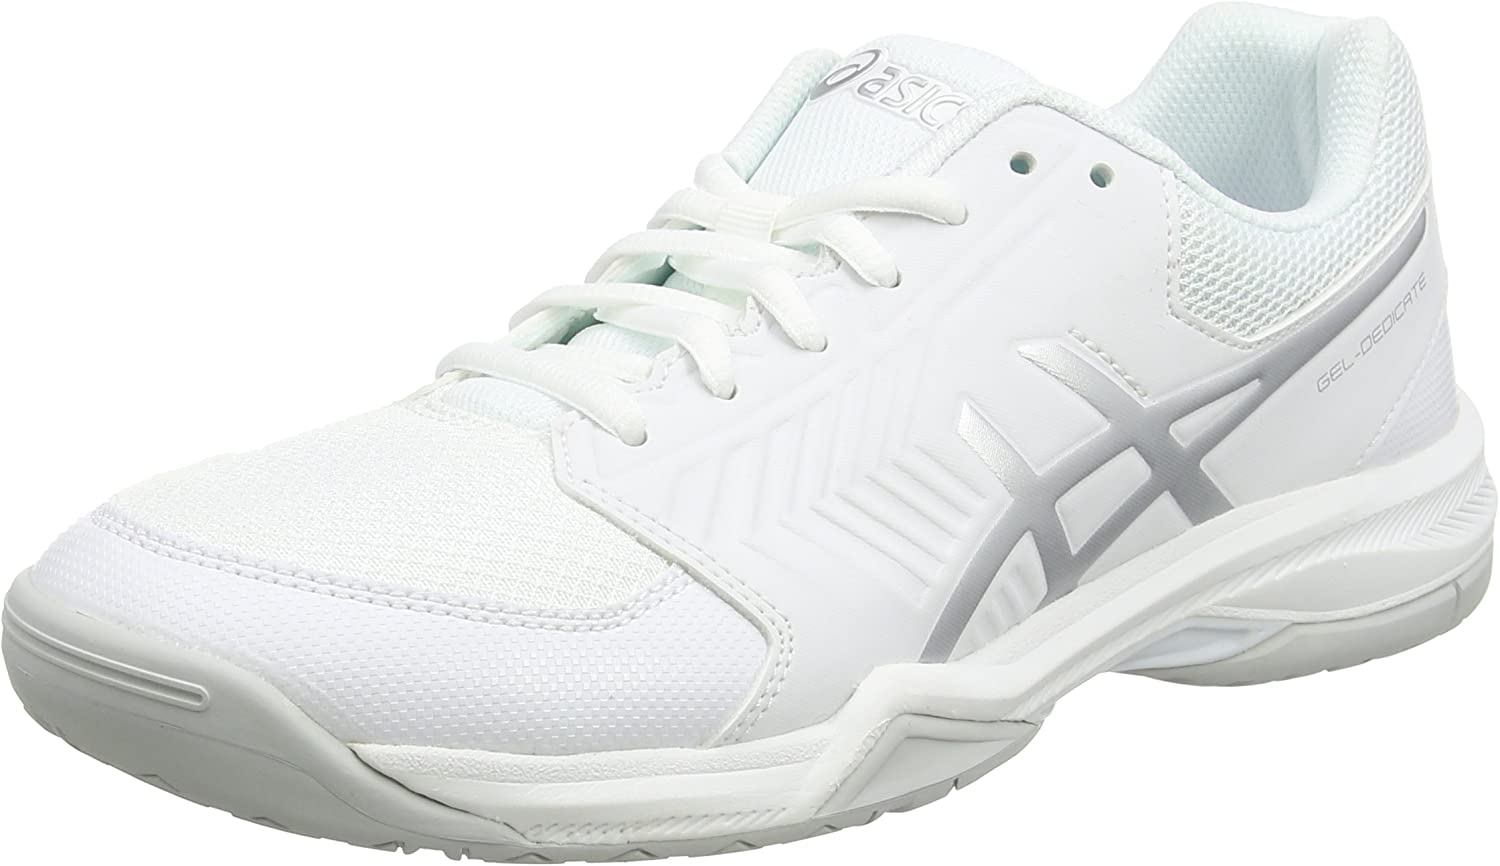 Asics - Geldedicate 5 Womens 0193 - color  White - Size  7.5US